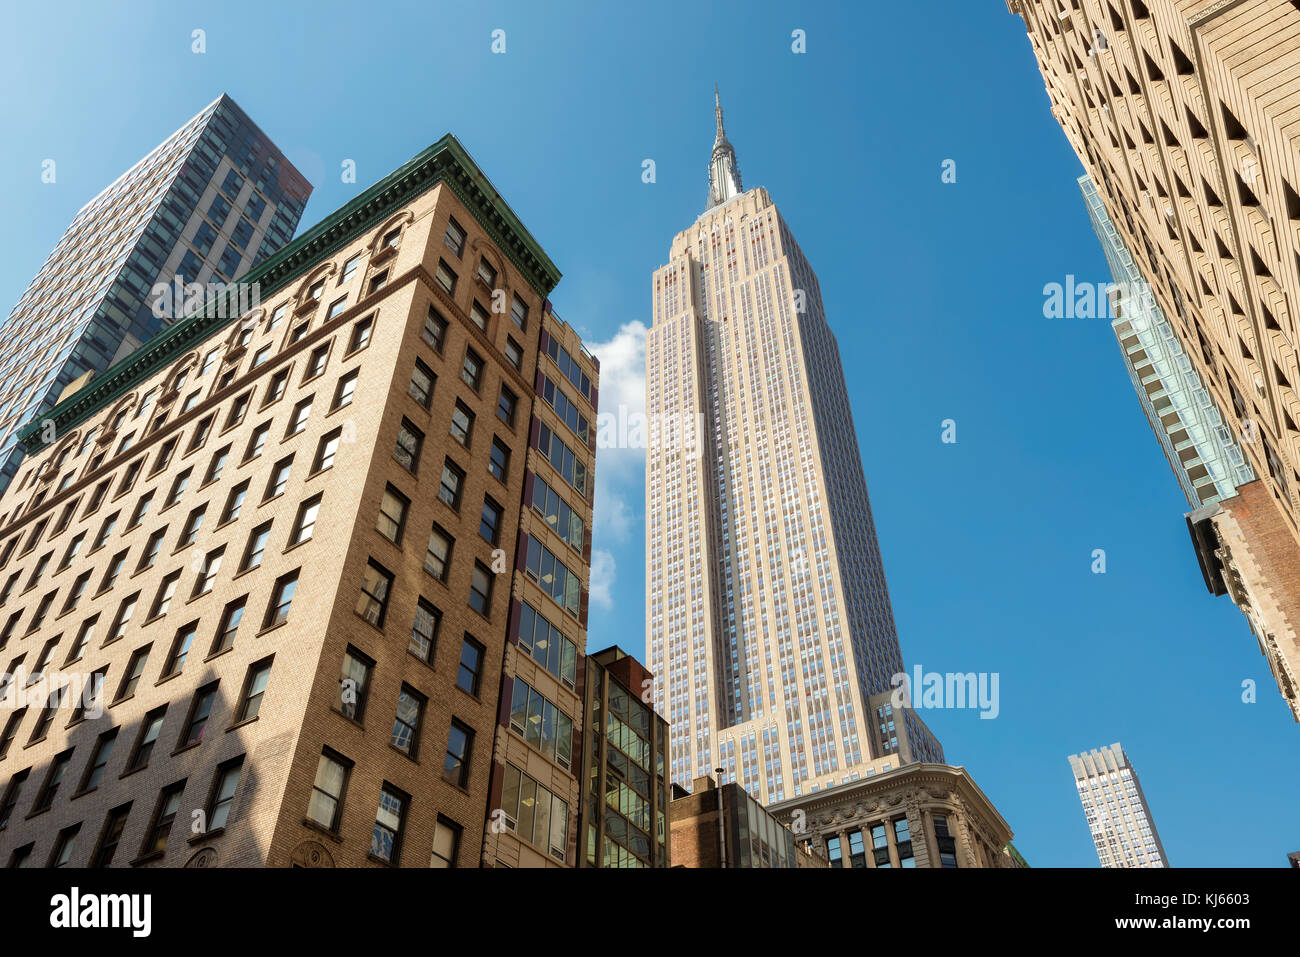 The Empire State Building in New York Stock Photo